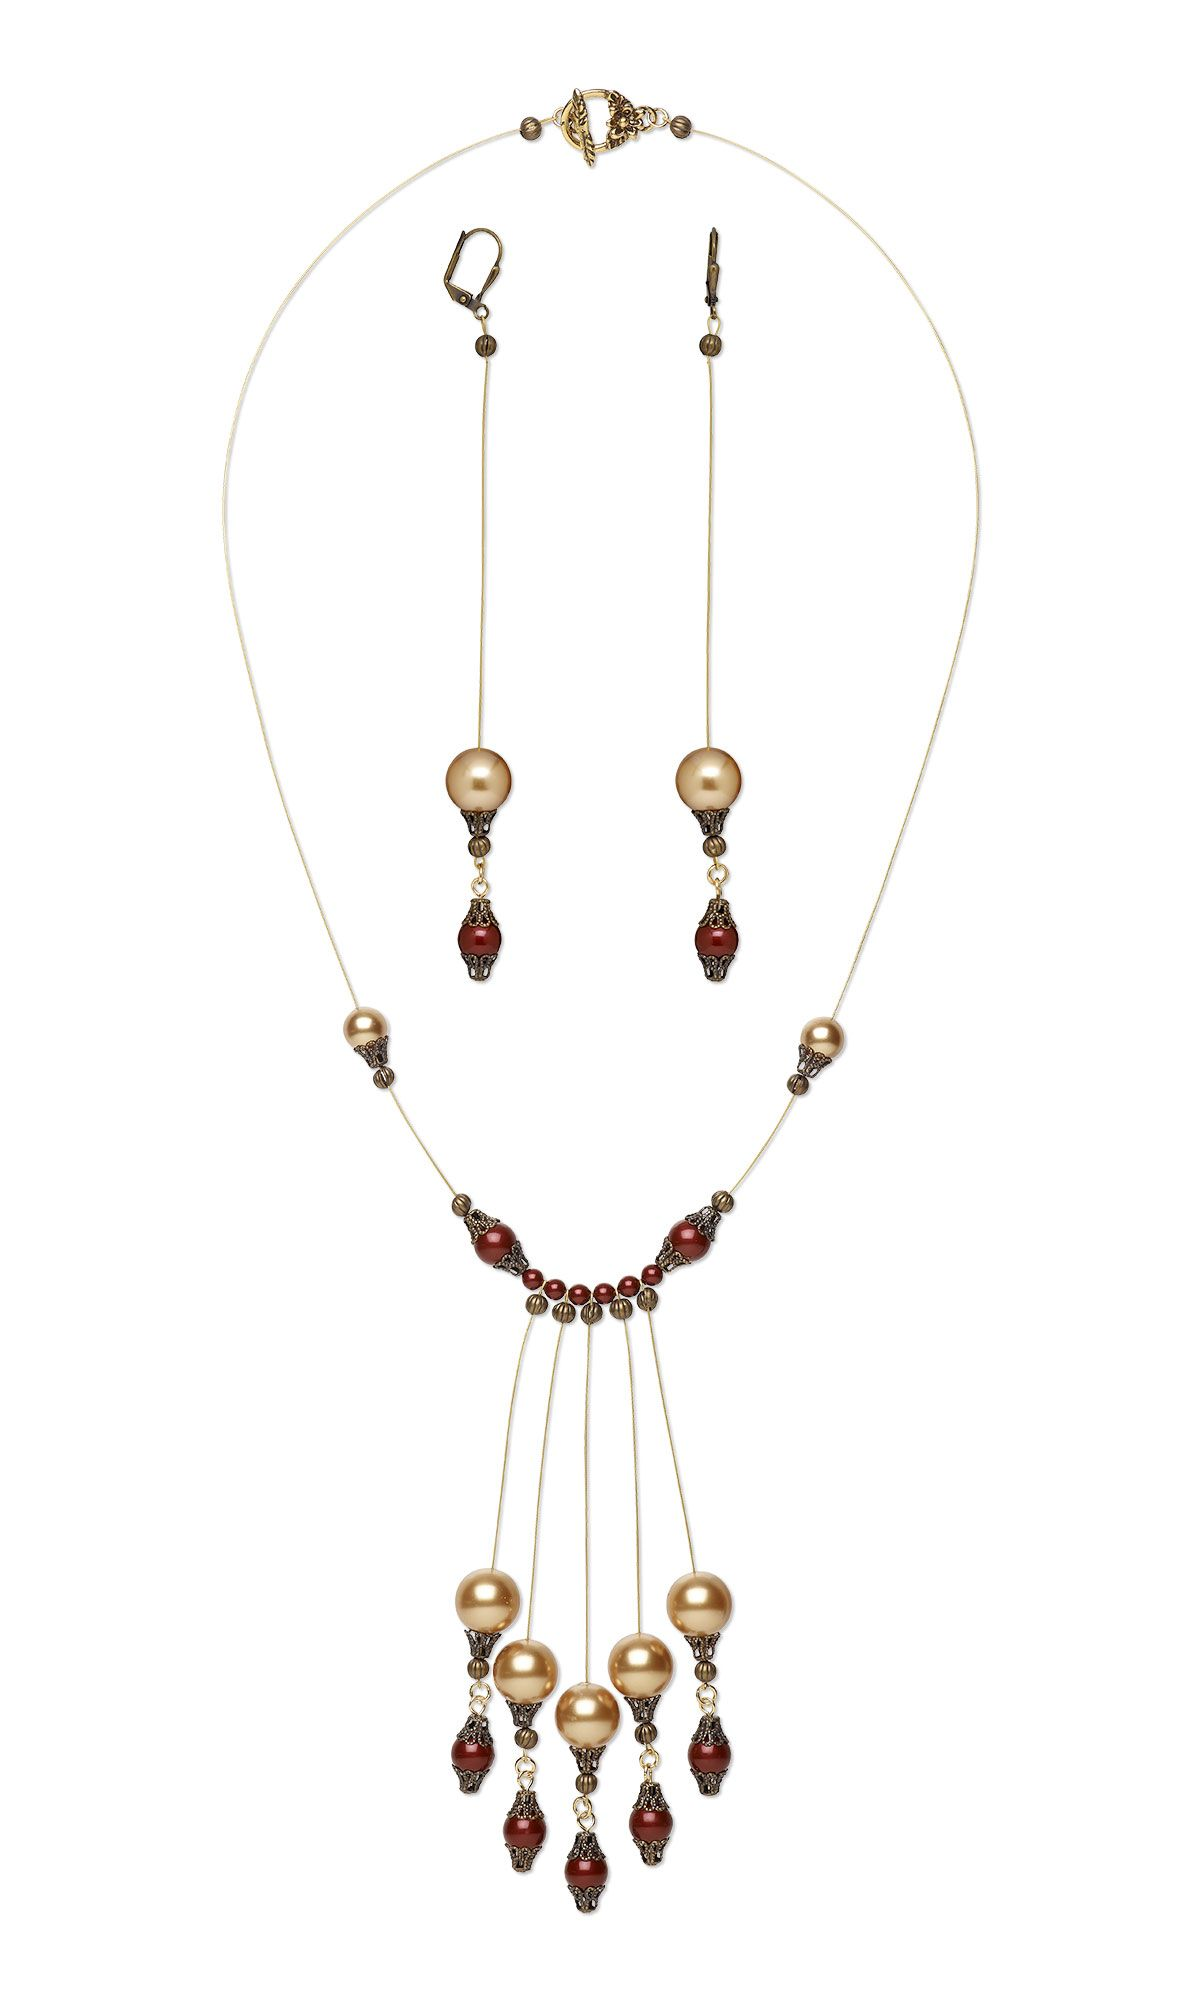 Jewelry Design - Single-Strand Necklace and Earring Set with ...